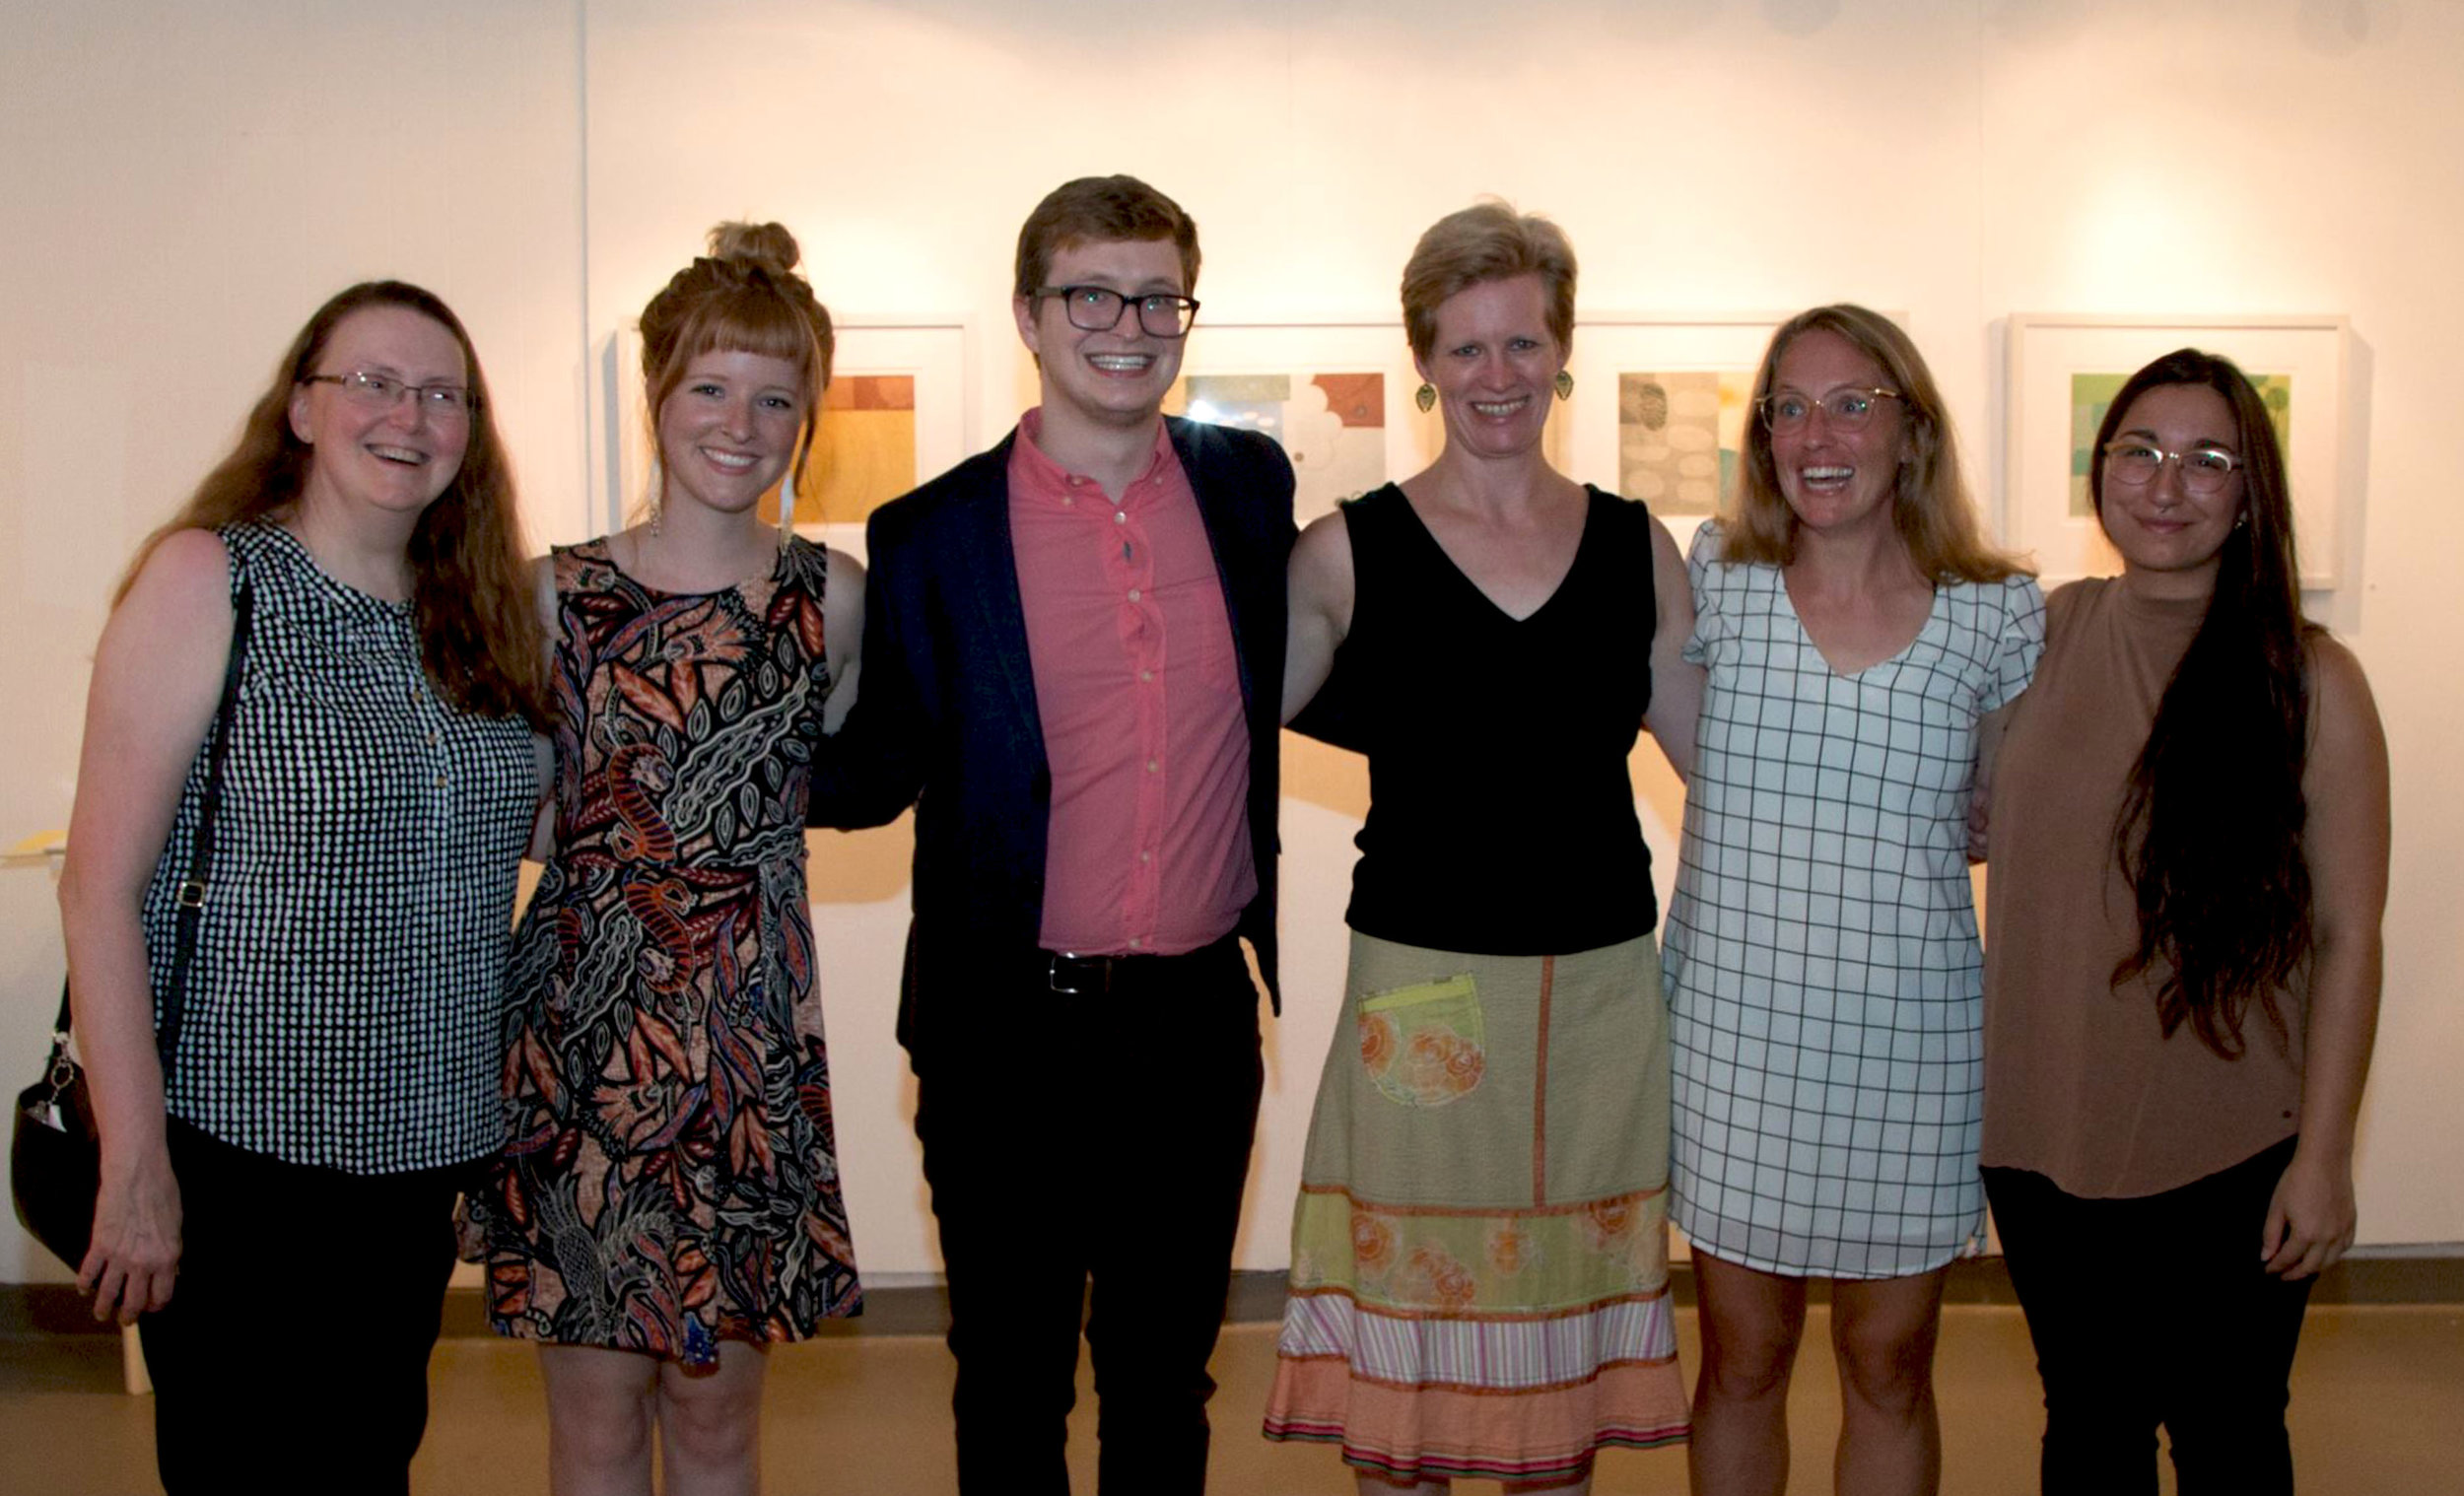 (left to right) Veda Rives, Molly Markow, Micah Zavacky, Sarah Smelser, Dylan Welch, and Felicia Cannon. Photo courtesy: Justine Kaszynski Photography.